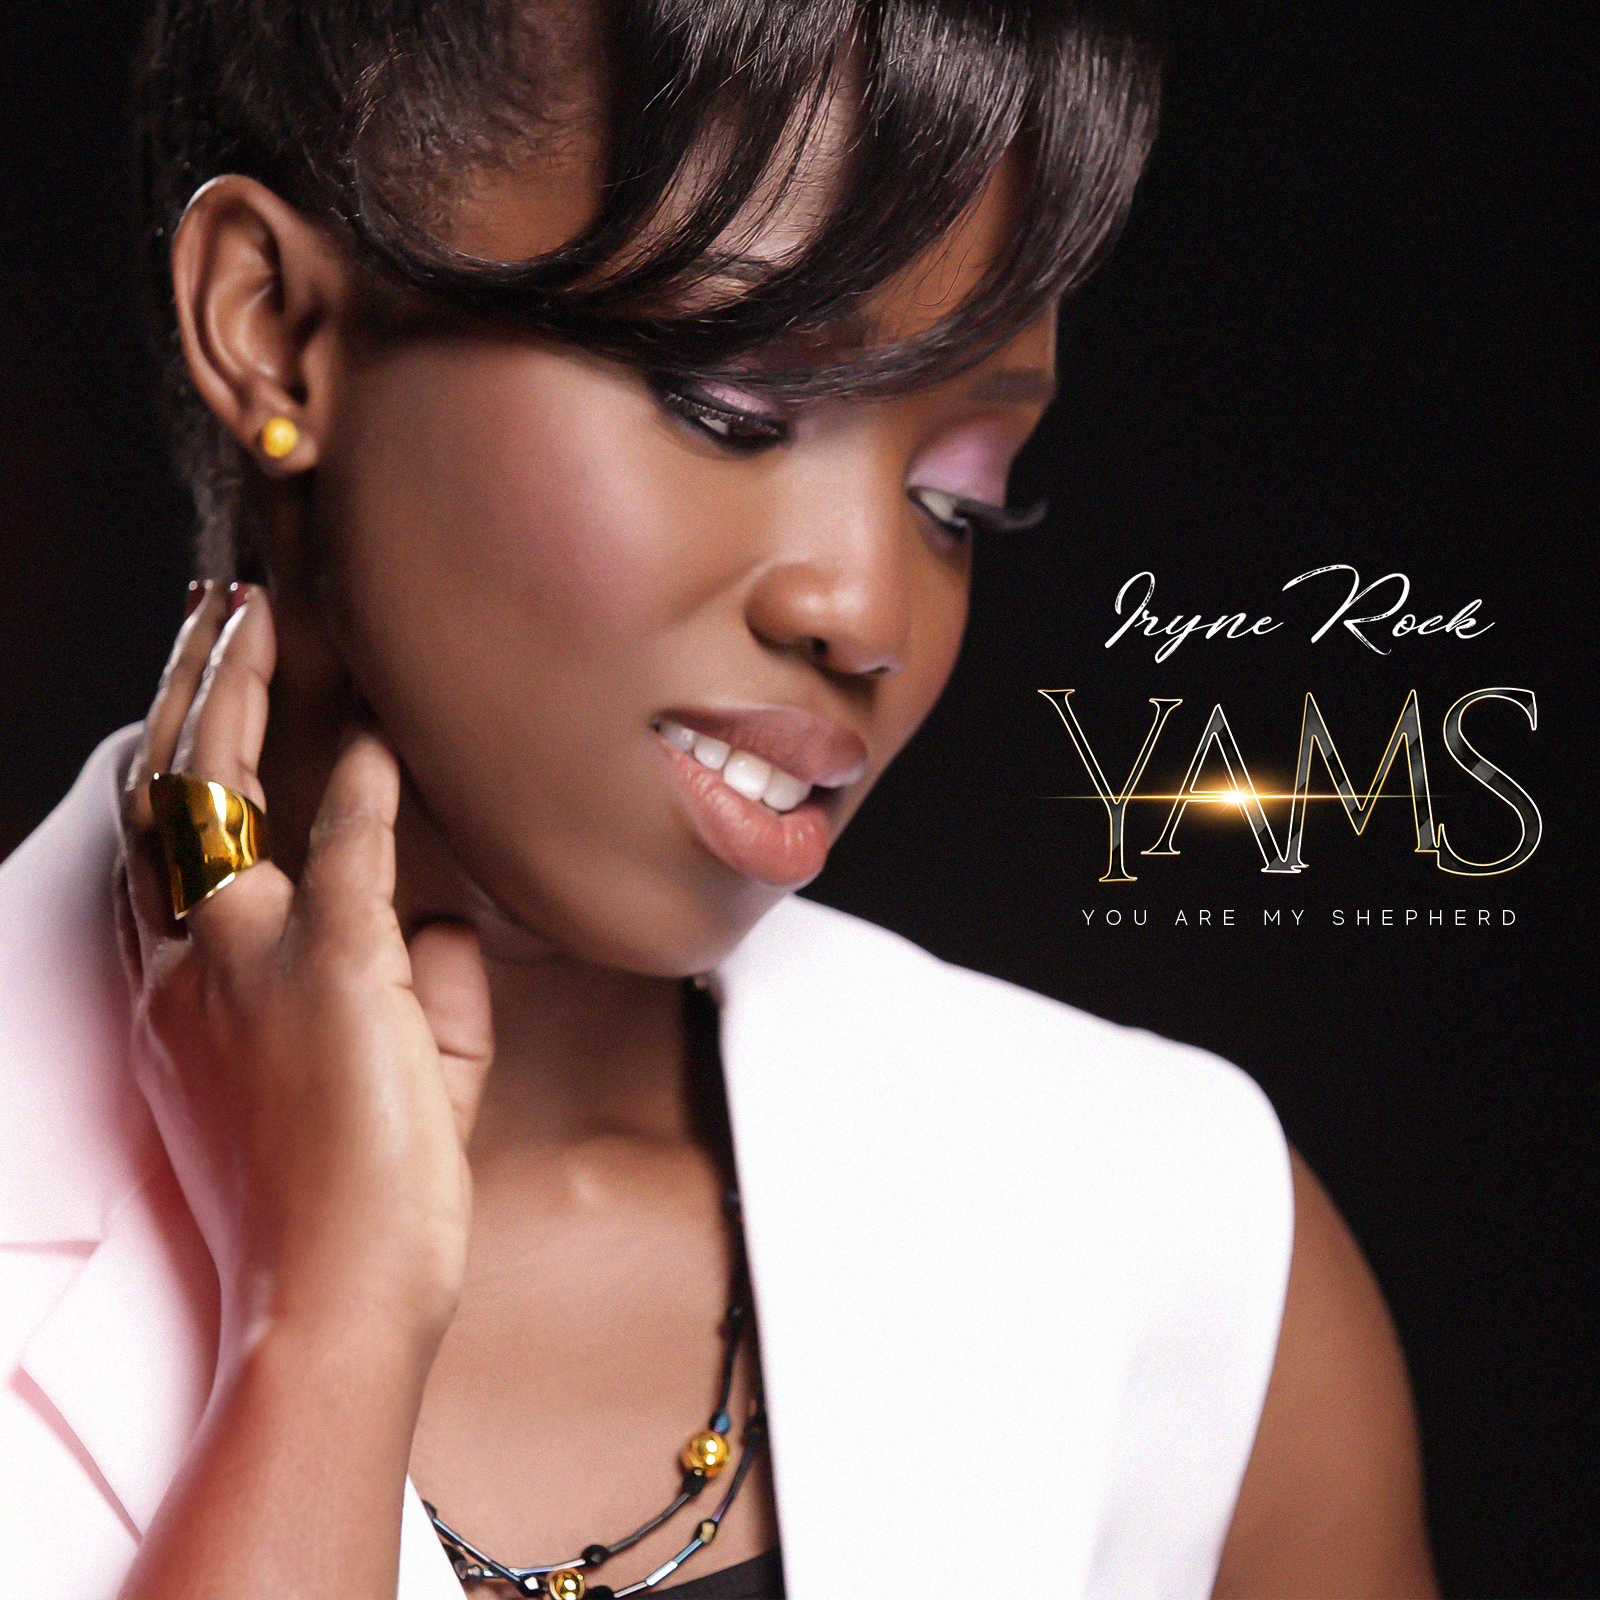 IRYNE ROCK RELEASES 'YOU ARE MY SHEPHERD' TO CHRISTIAN RADIO